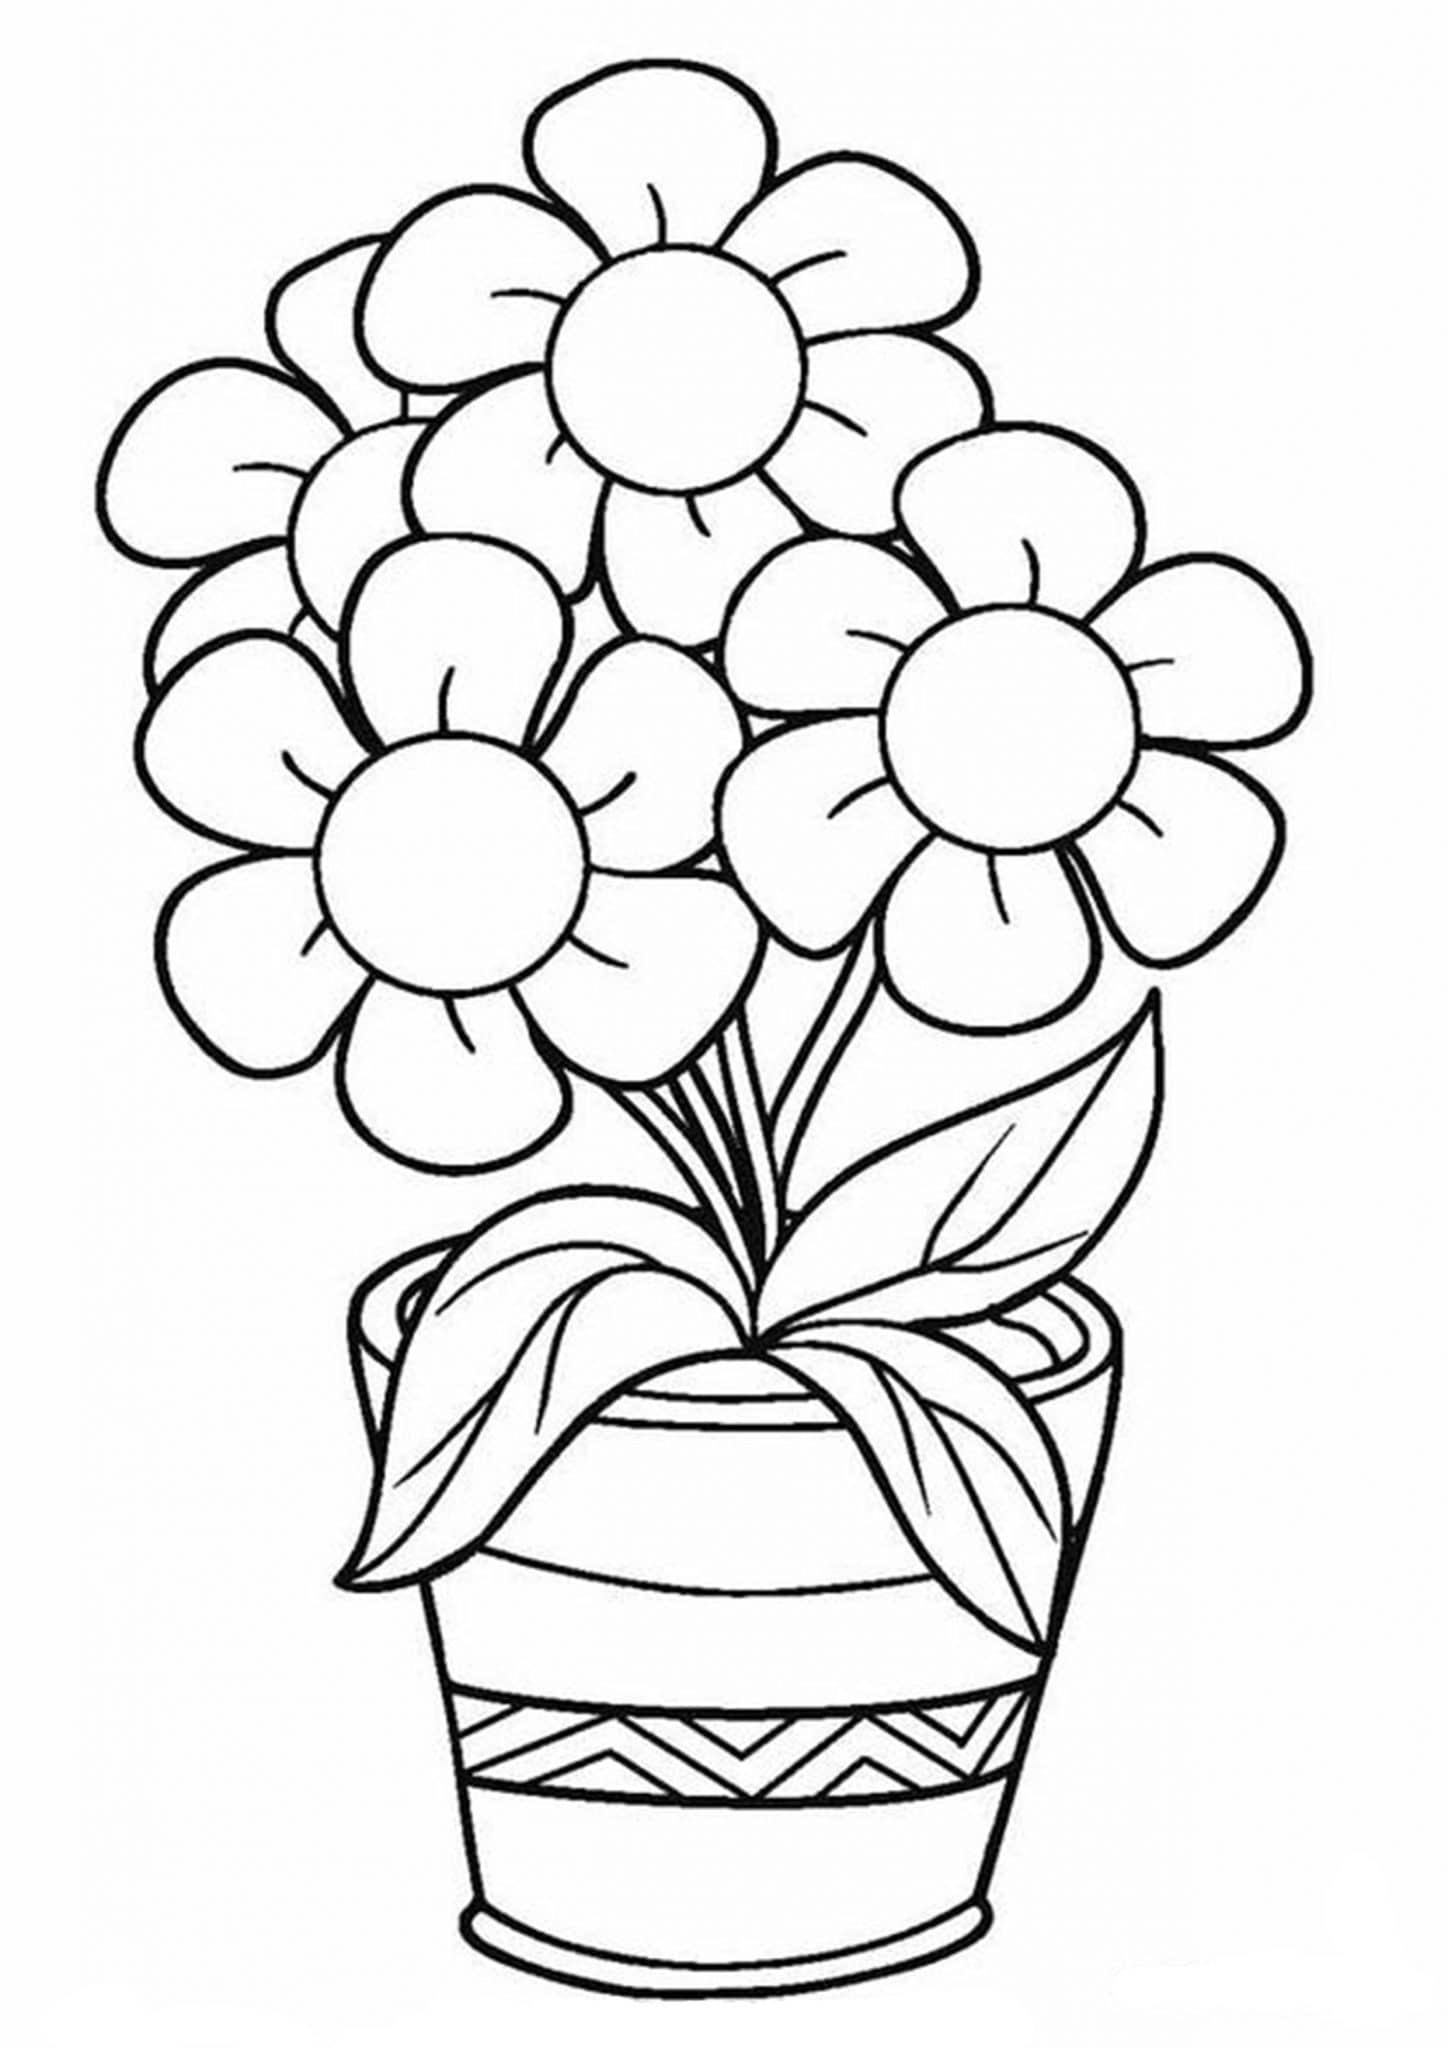 picture of flowers to colour free printable flower coloring pages for kids best picture to of colour flowers